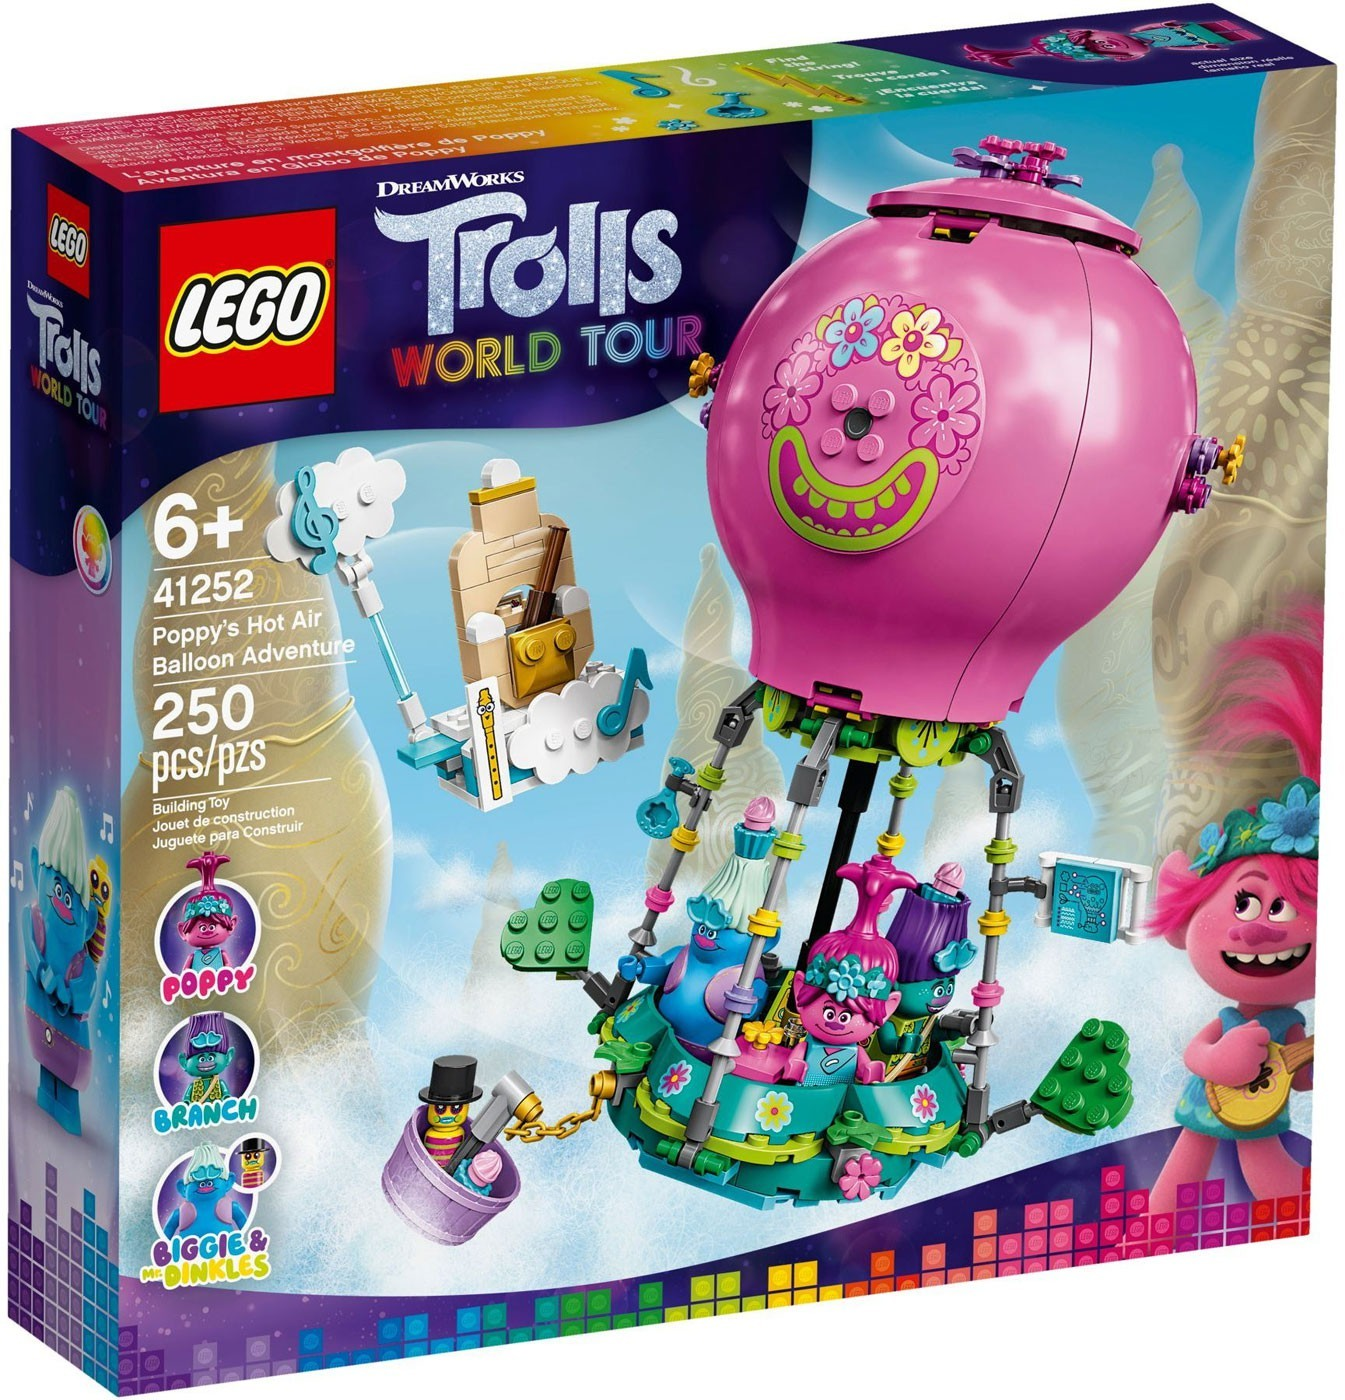 Lego Trolls World Tour Sets